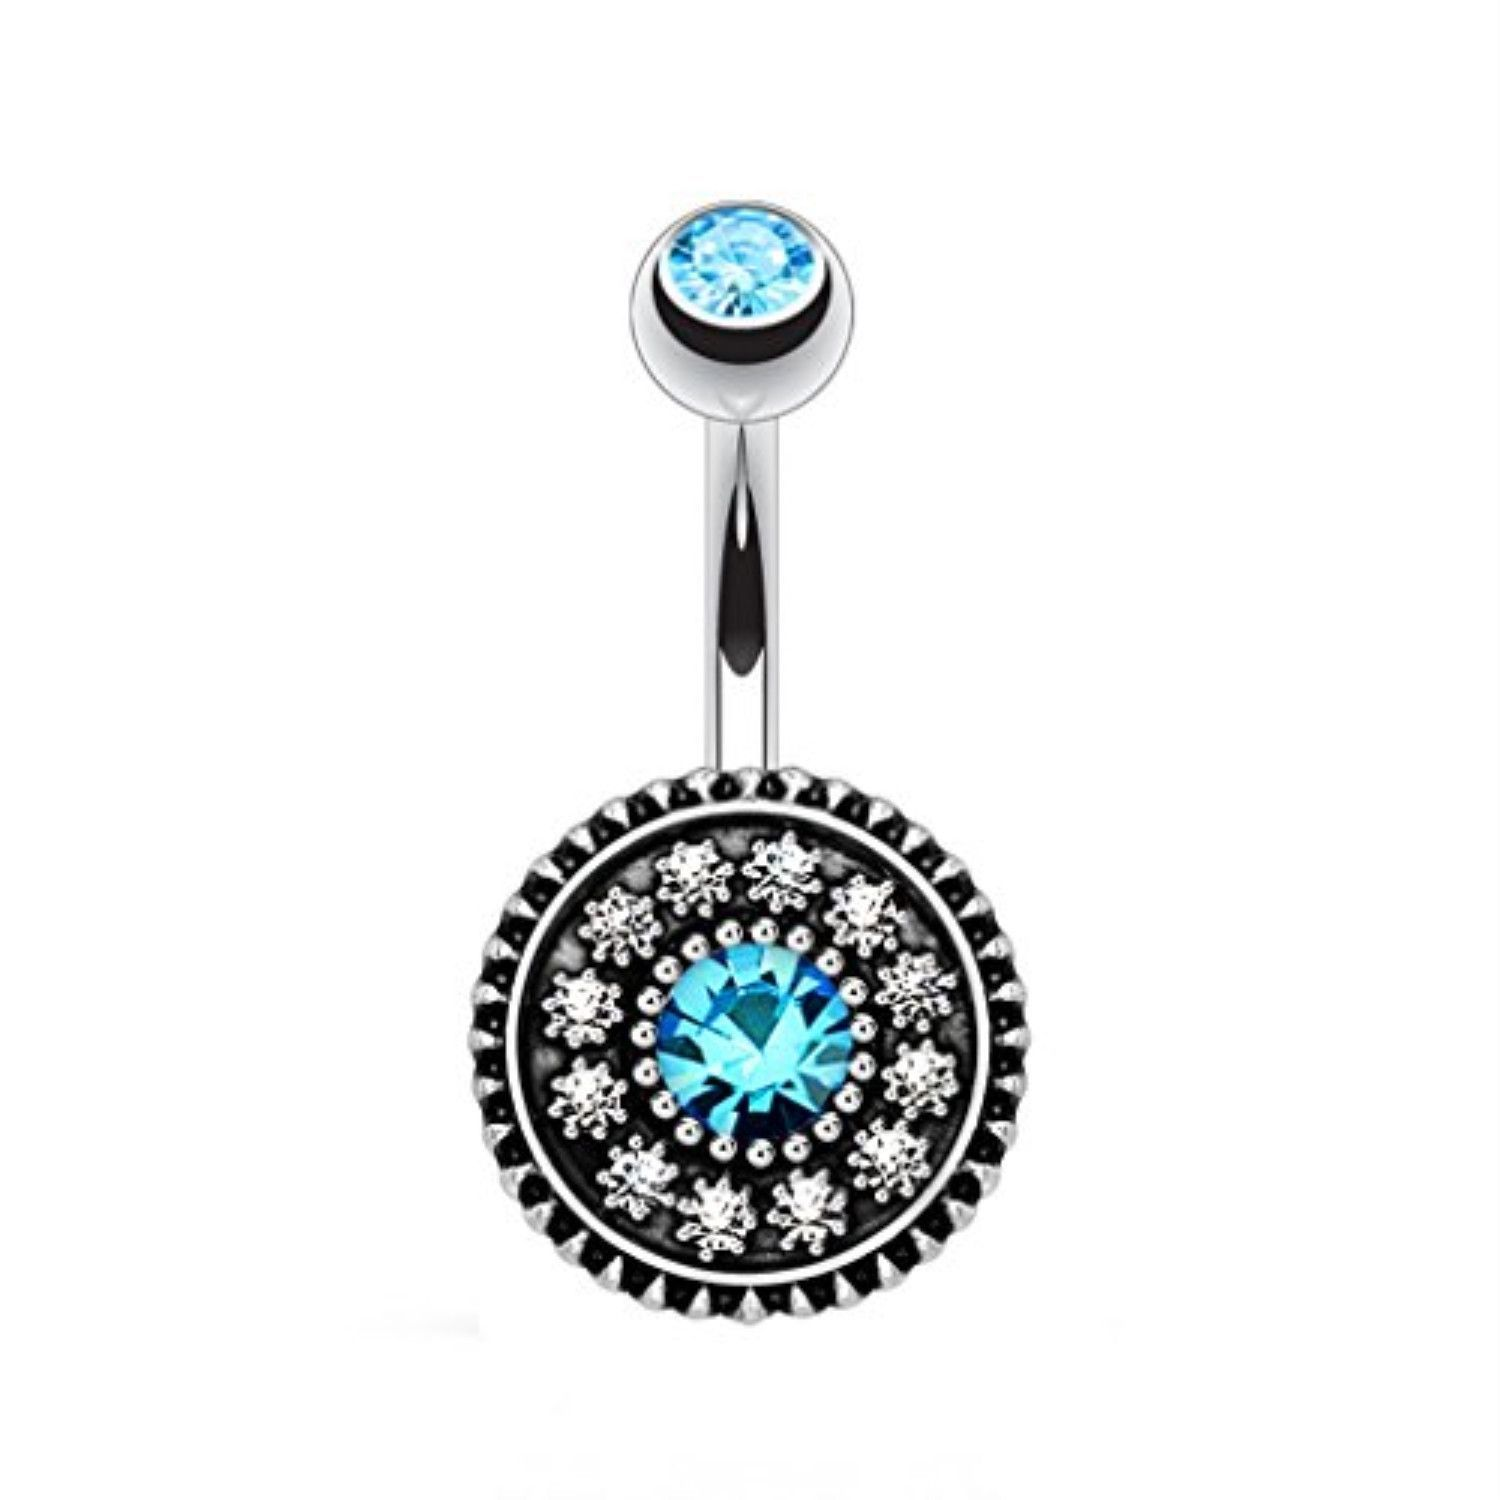 Belly without piercing  BodyJYou Belly Button Ring Aqua Blue Vintage Shield Gem Piercing